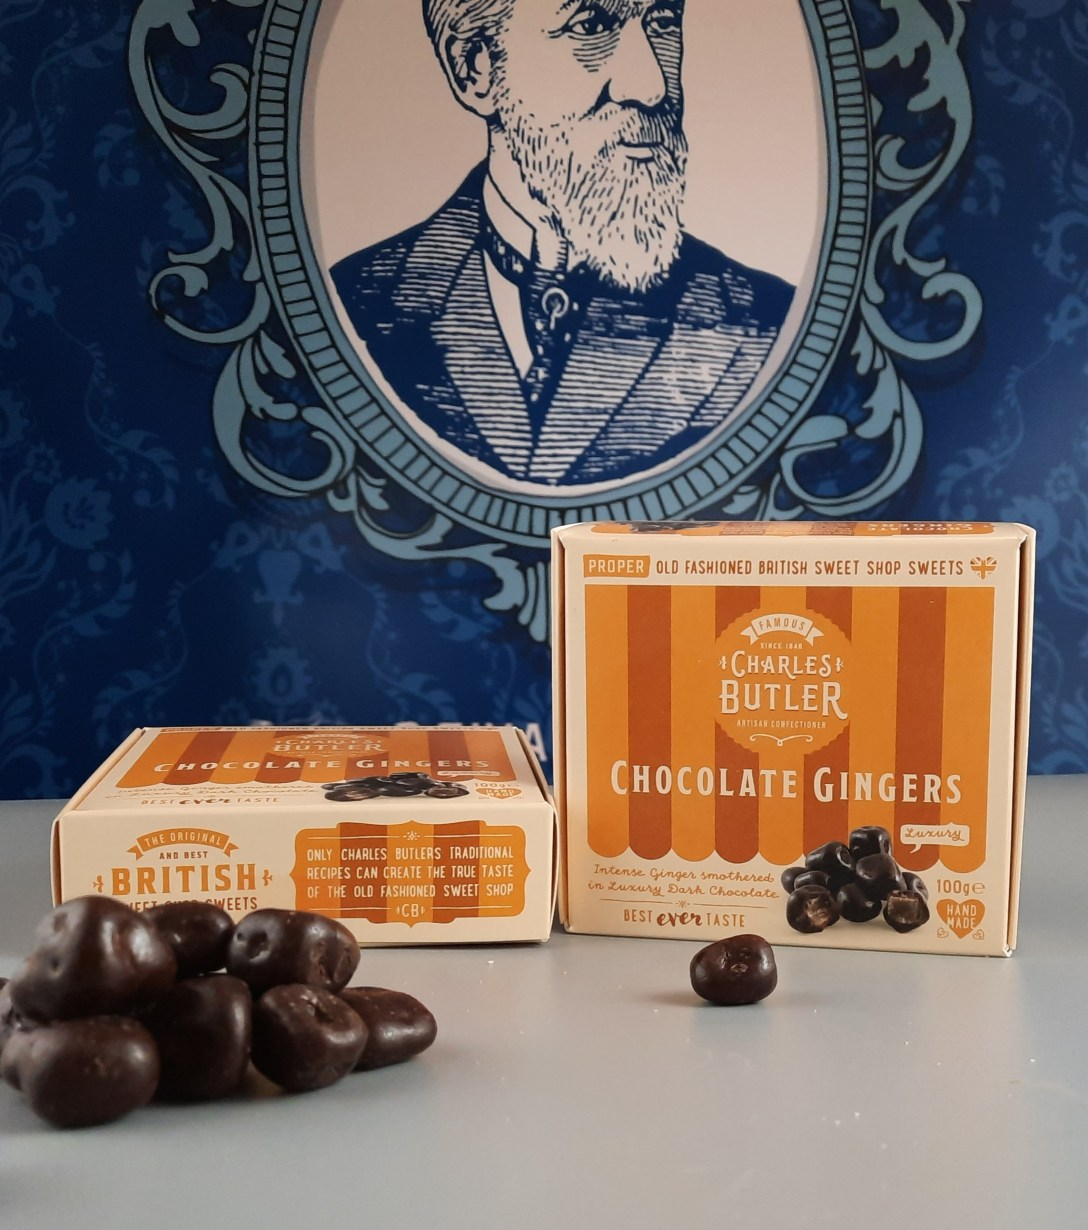 Charles Butler Chocolate Gingers 100g